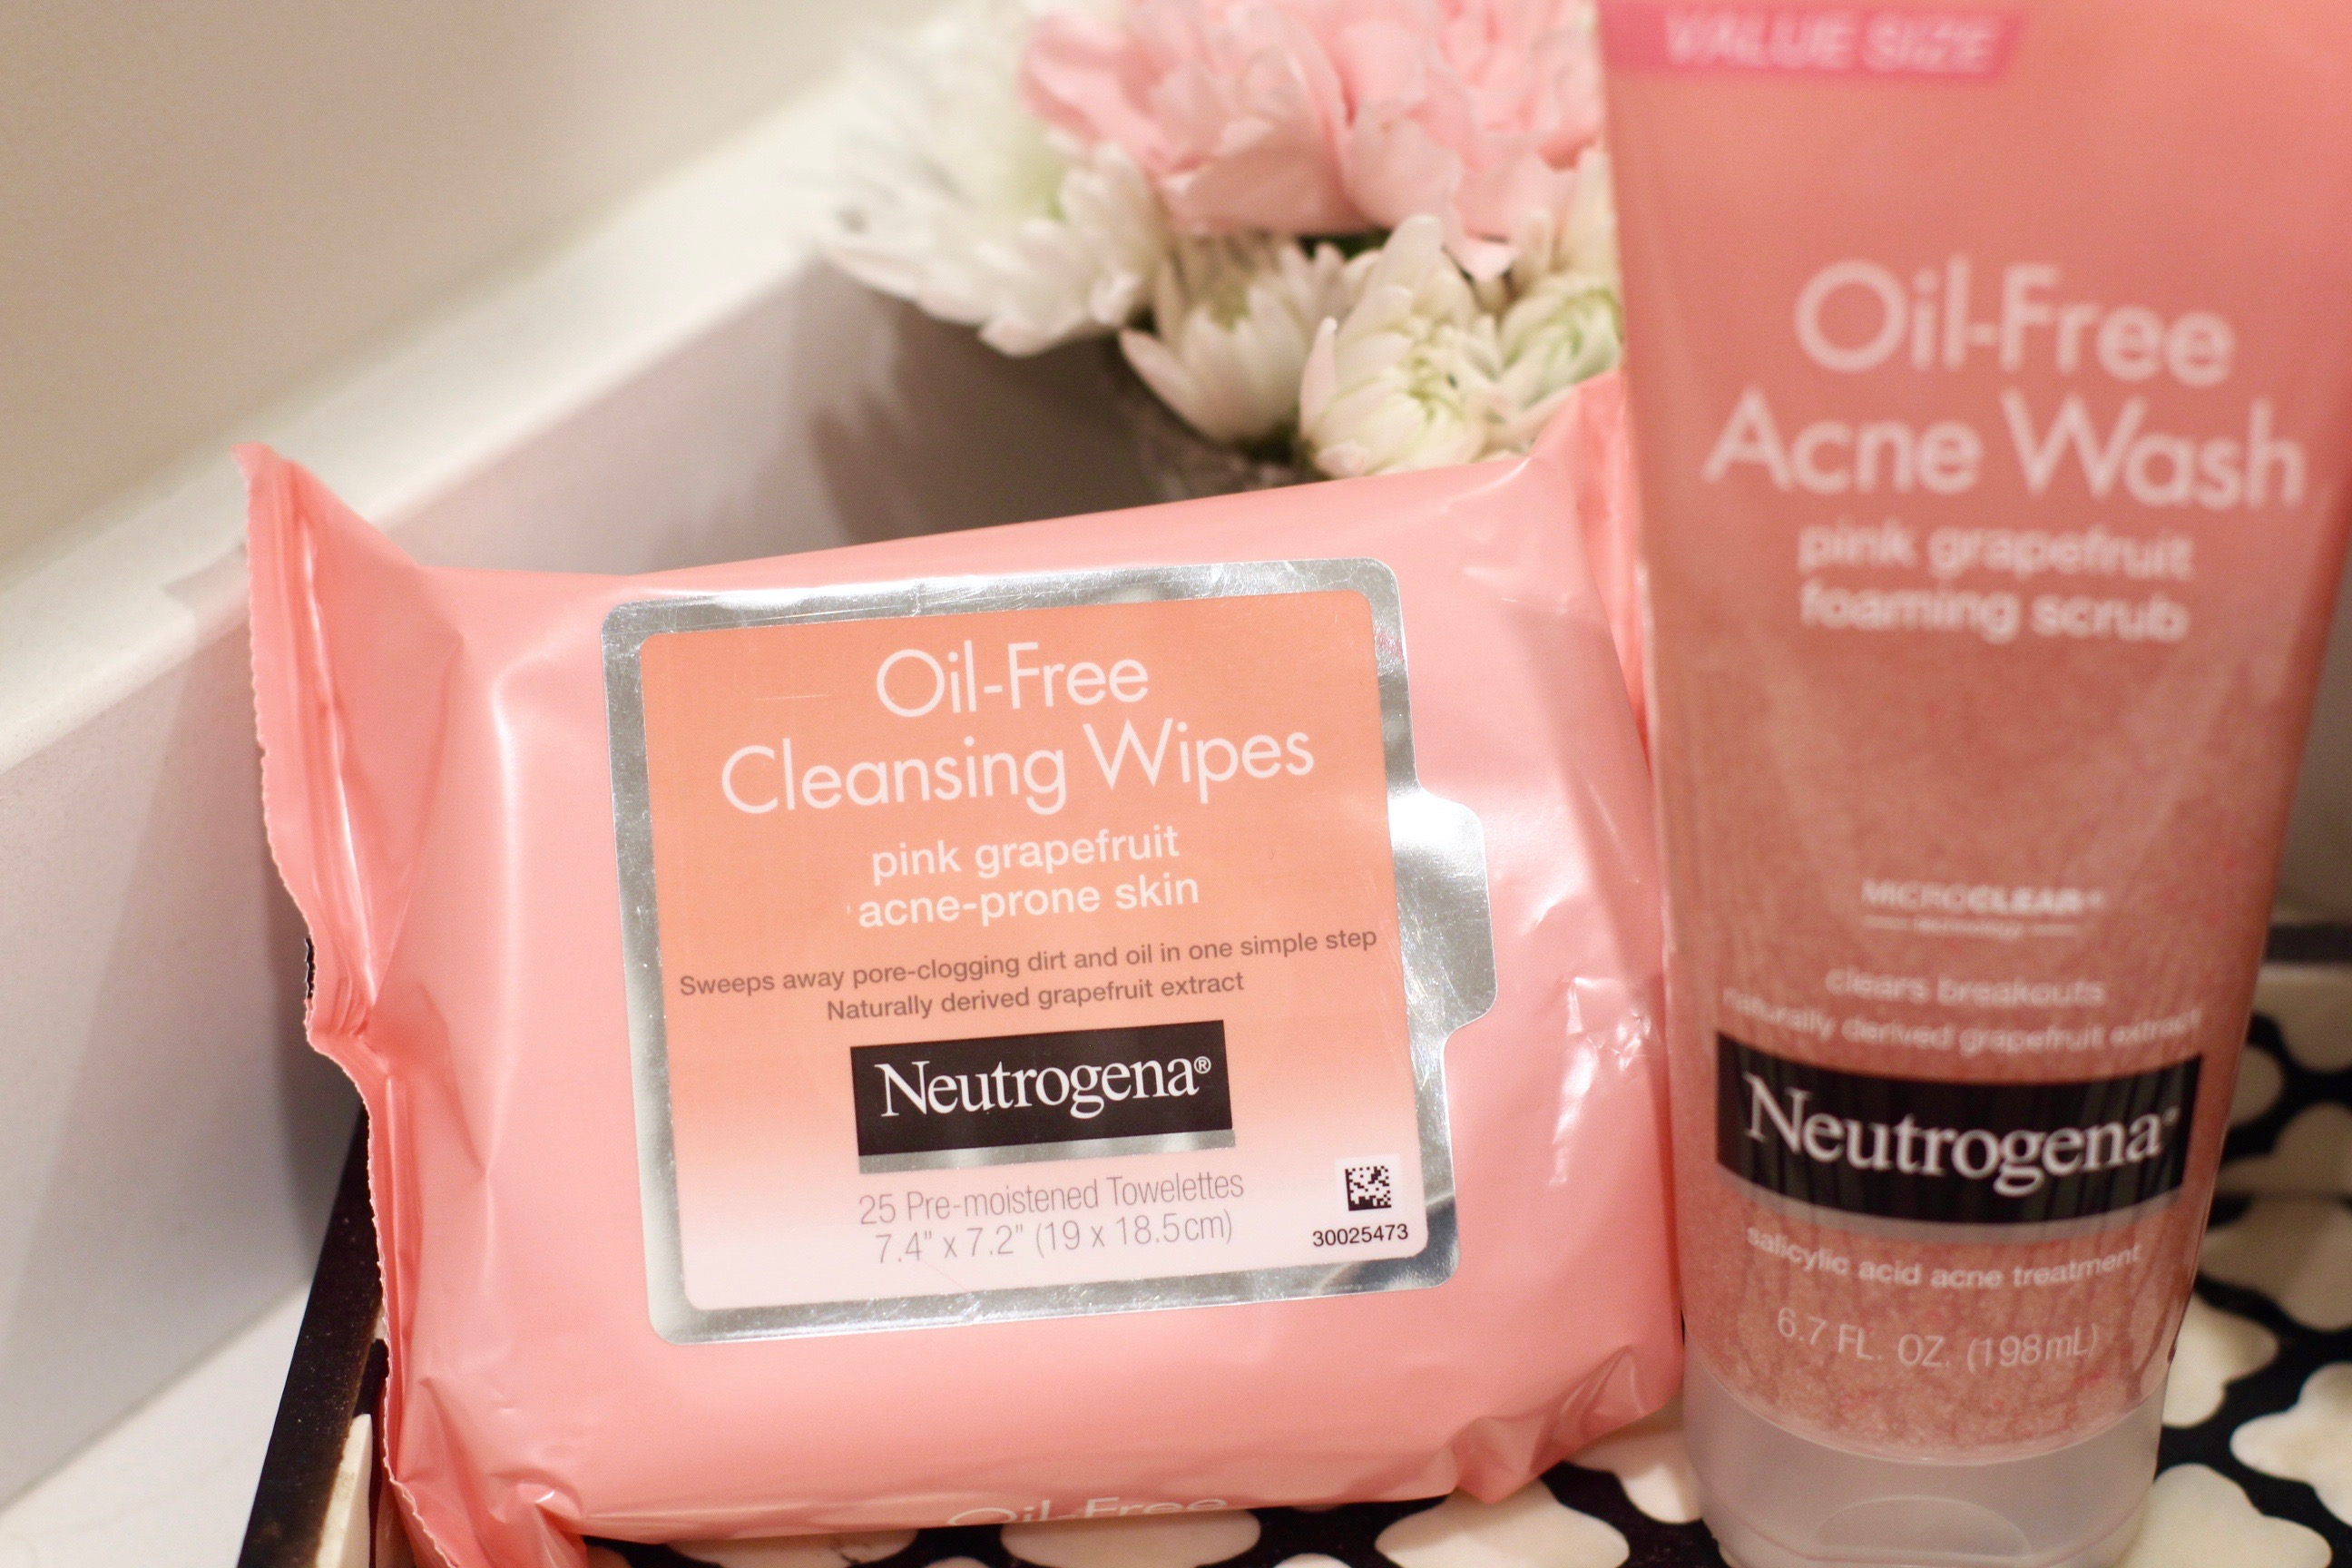 missyonmadison, melissa tierney, target, skincare, beauty, neutrogena, back to school morning routine, skincare routine, neutrogena wipes, face products, college supplies, target beauty, beauty steals, beauty deals, beauty blogger, tutorials,